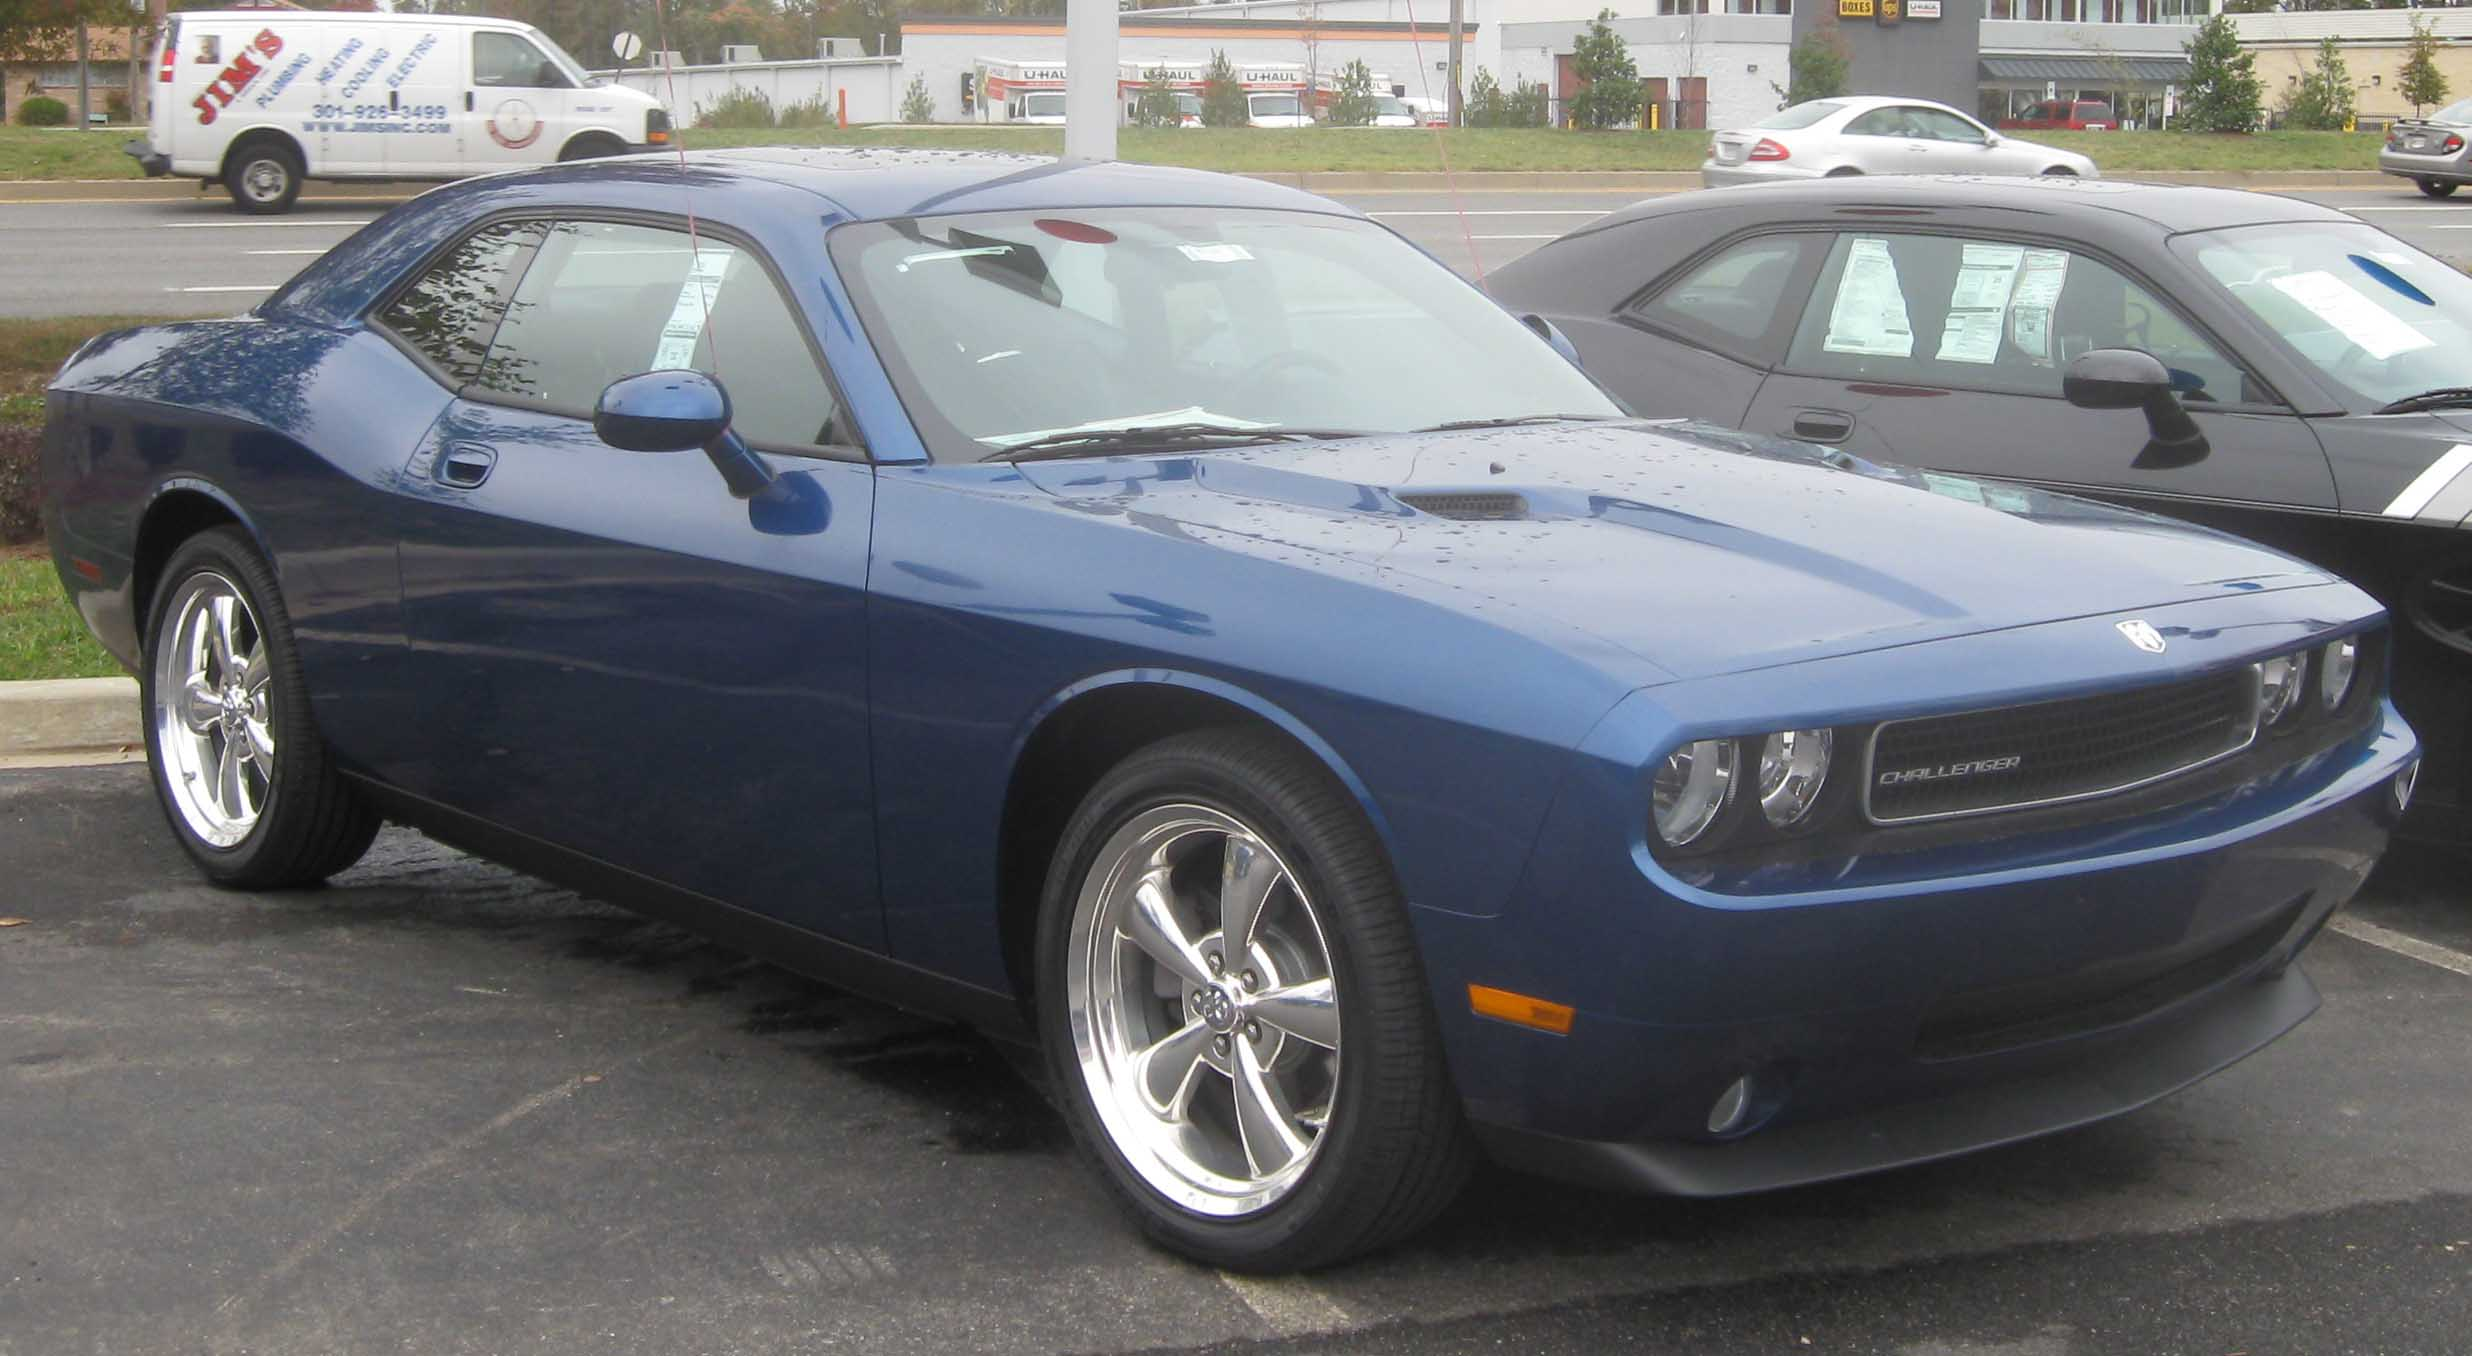 File:2009 Dodge Challenger SE.jpg - Wikimedia Commons